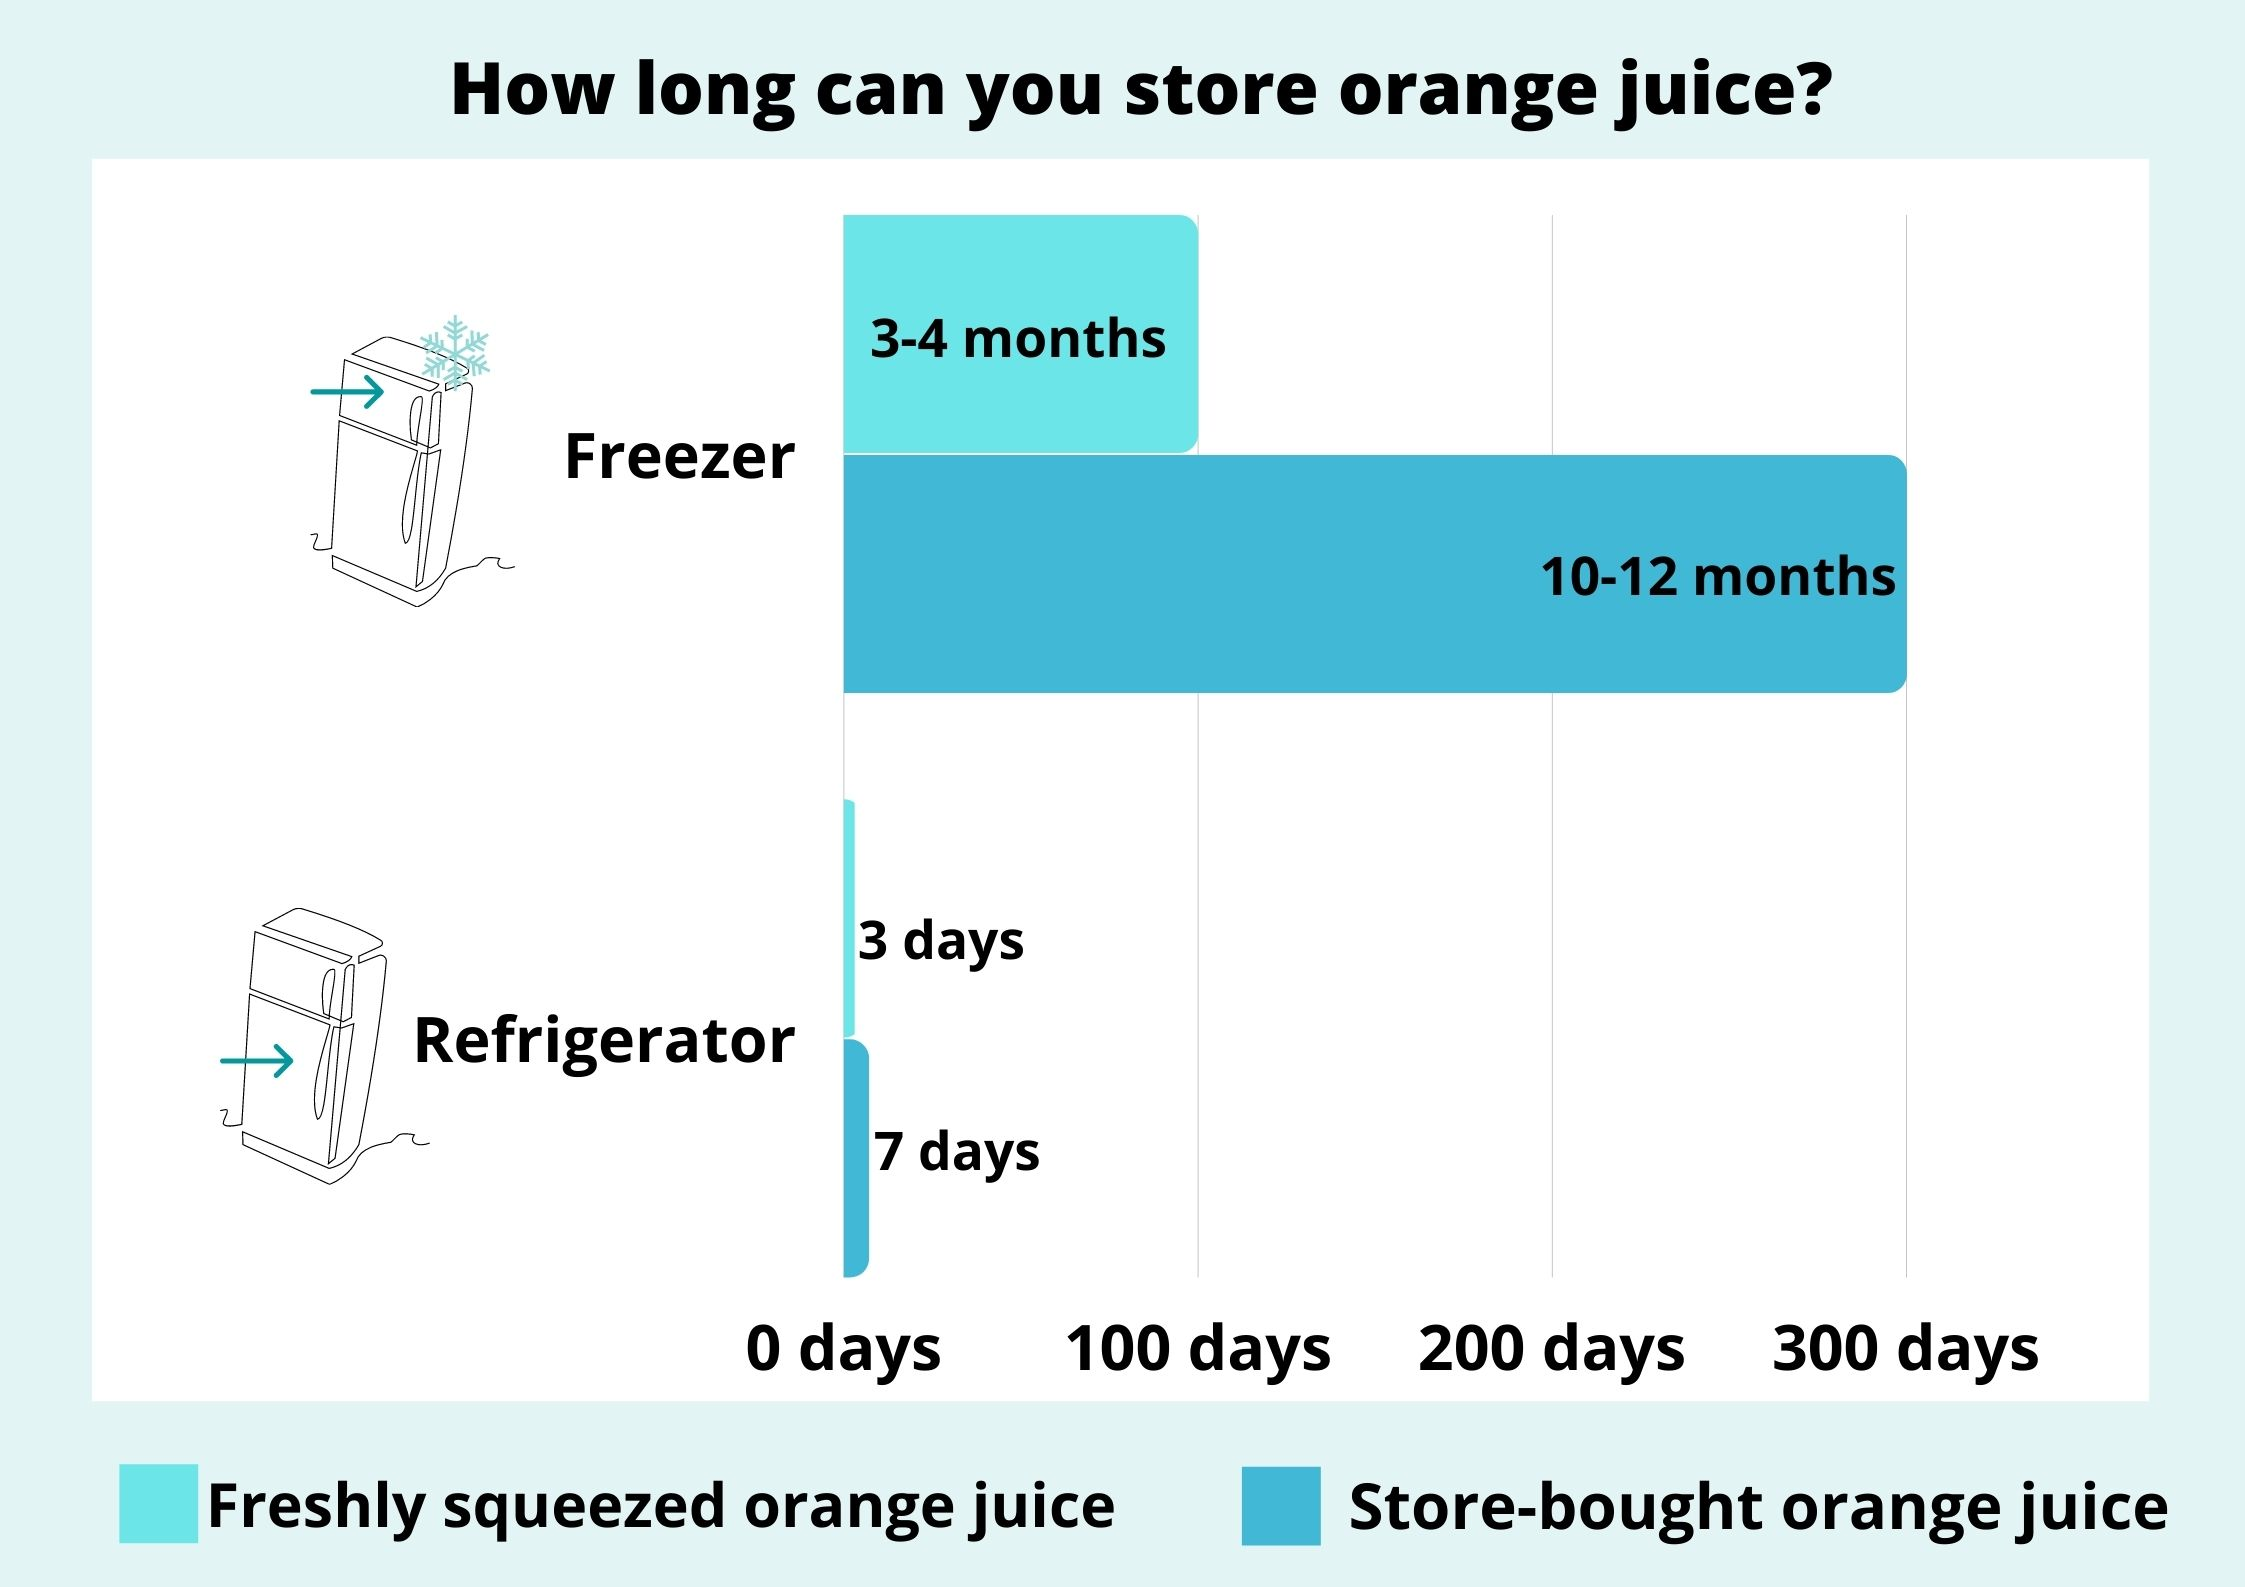 how long can you store orange juice